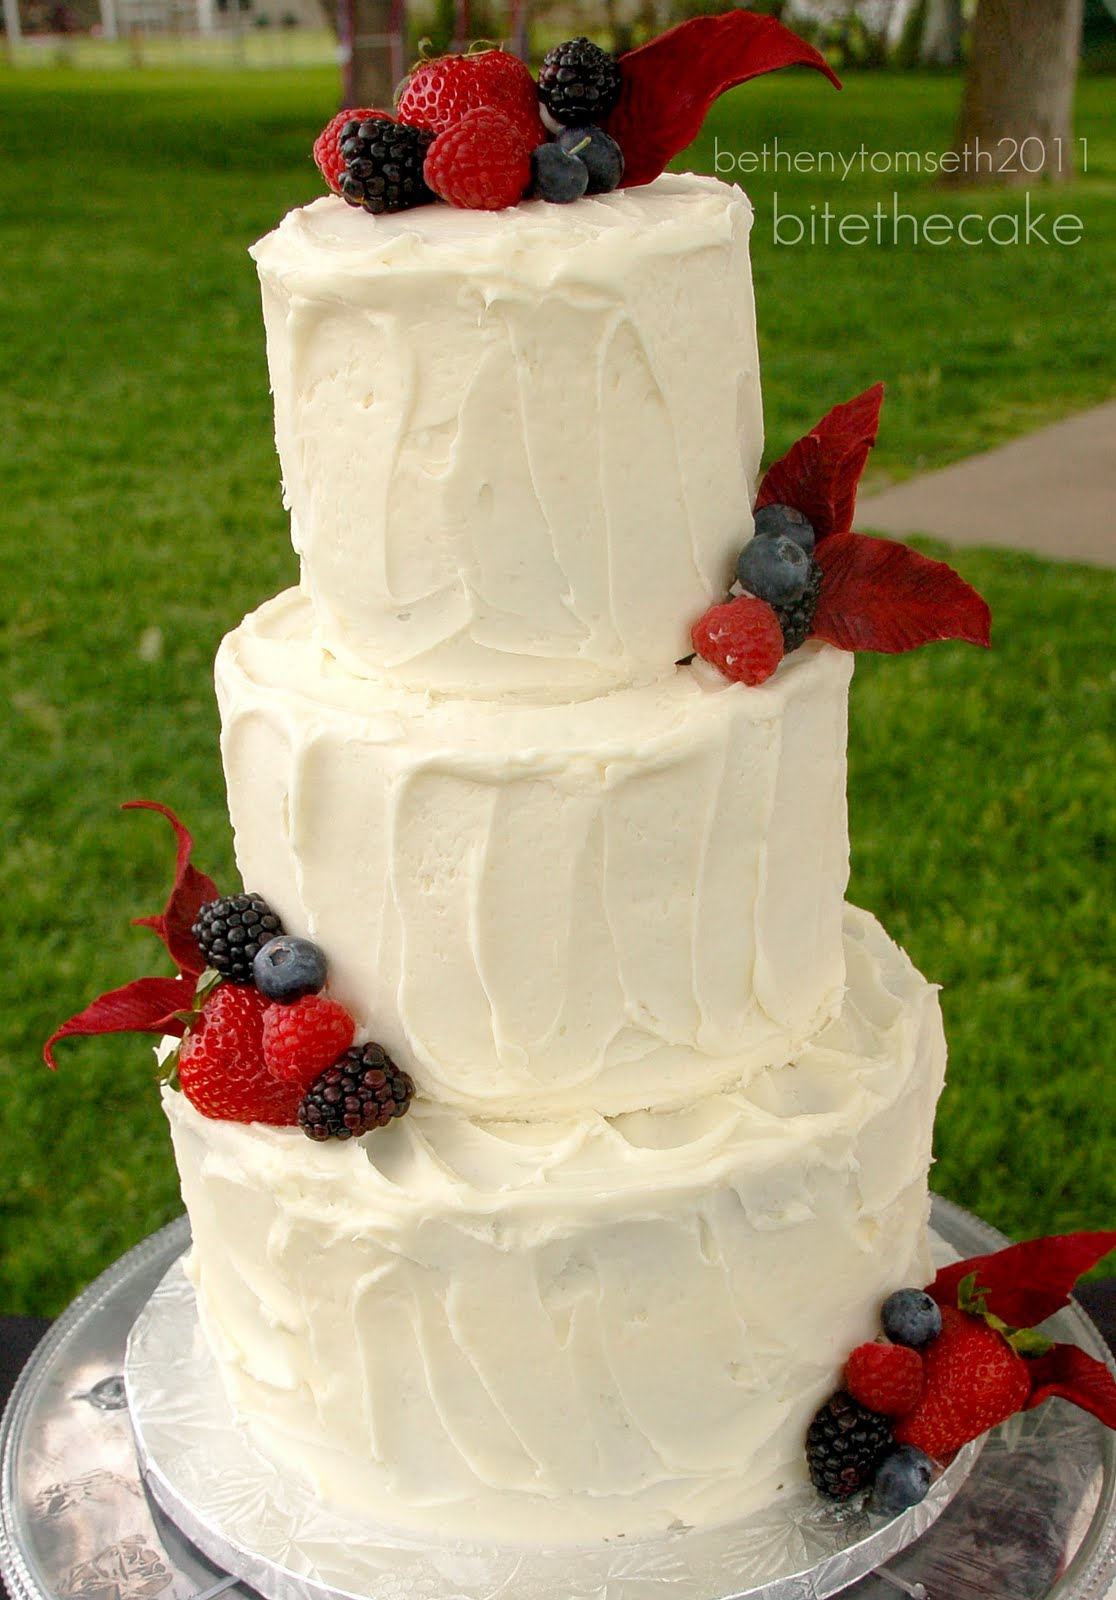 Red Velvet W Cream Cheese Buttercream Garnished Fresh Berries And Gumpaste Leaves 8 6 4 Tiers